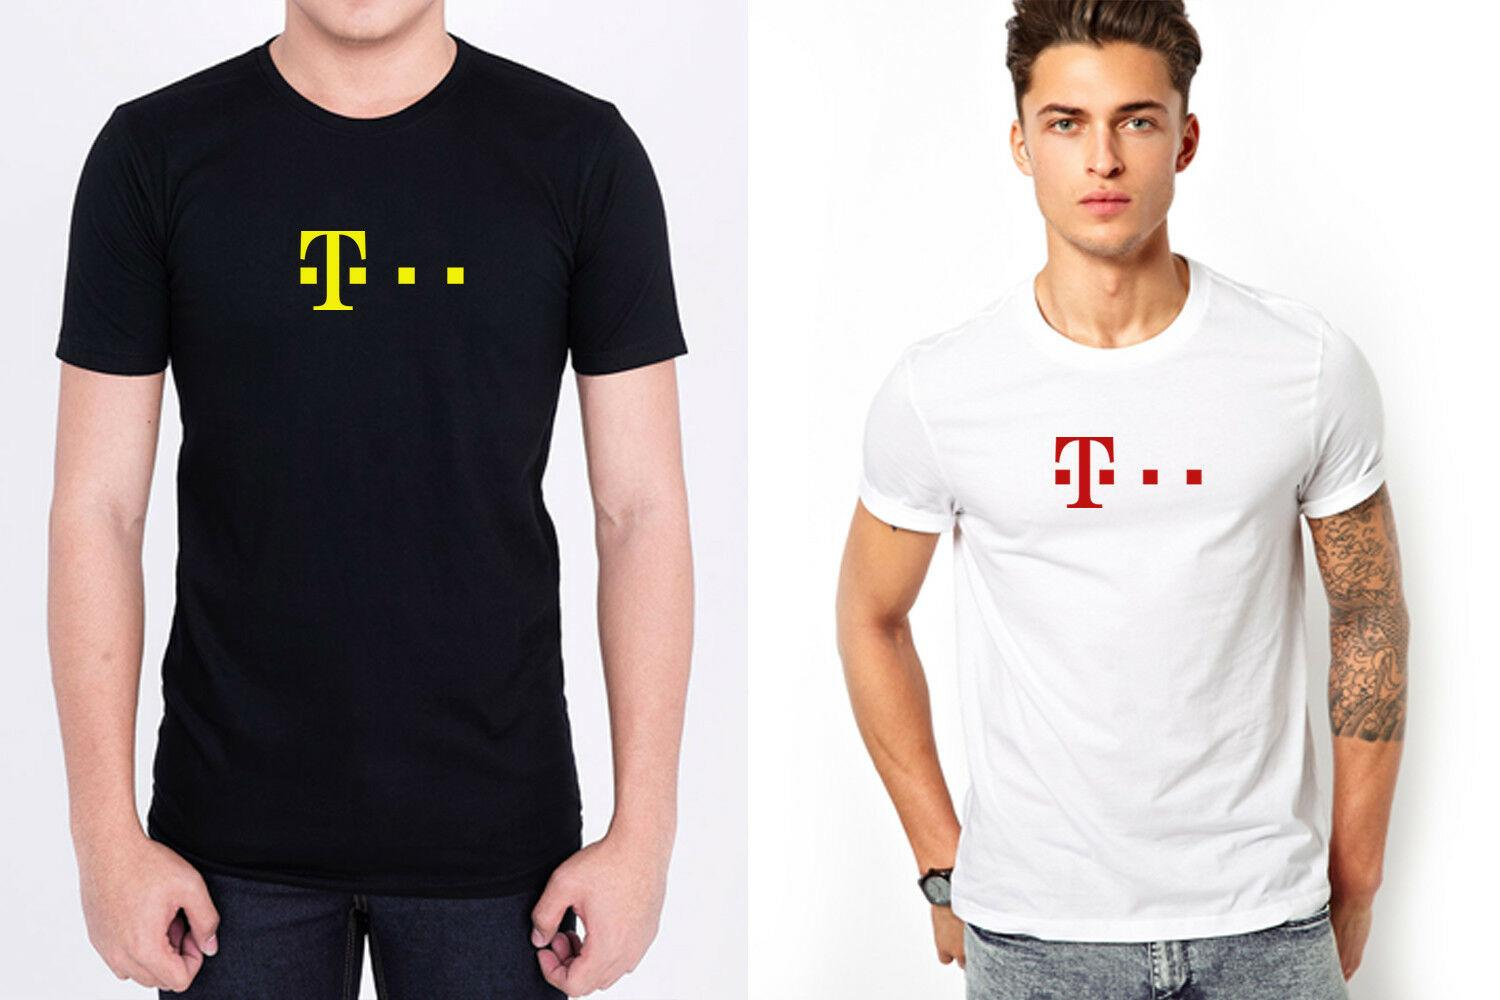 6c12ccf0c T MOBILE TELEKOM LOGO Men Black White T Shirt Personalized 100% CottonFunny  Unisex Casual Tshirt Daily Tee Shirts Coolest Shirt From Sg_outlet, ...